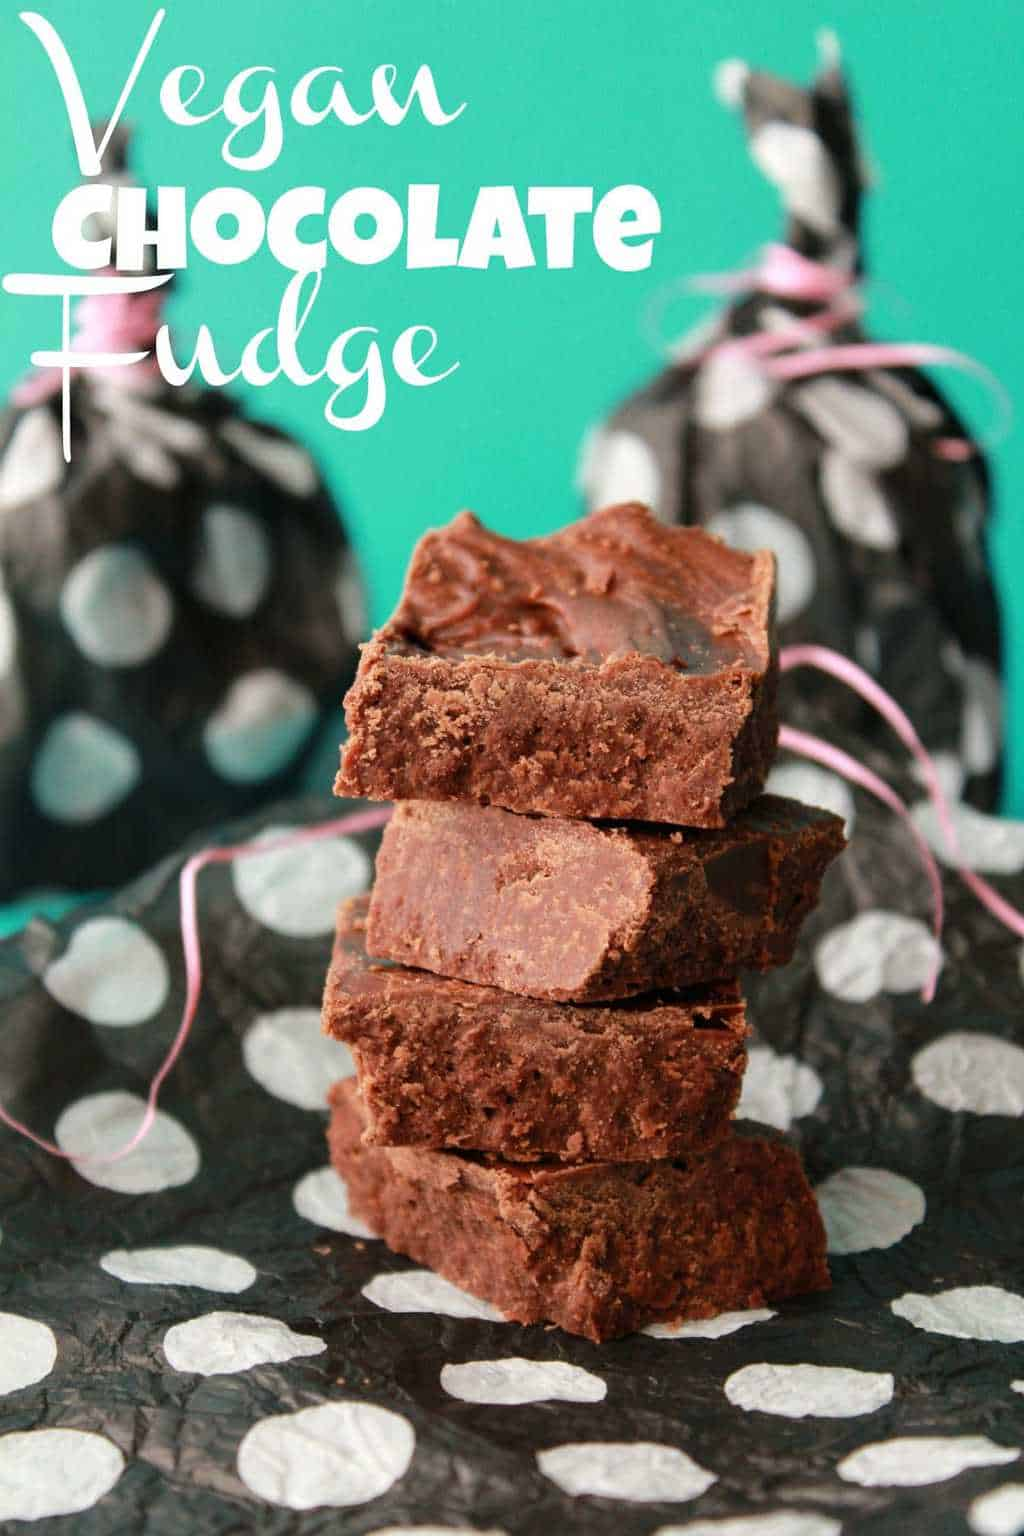 Vegan Chocolate Fudge made with Homemade Vegan Condensed Milk #vegan #lovingitvegan #chocolatefudge #dessert #fudge